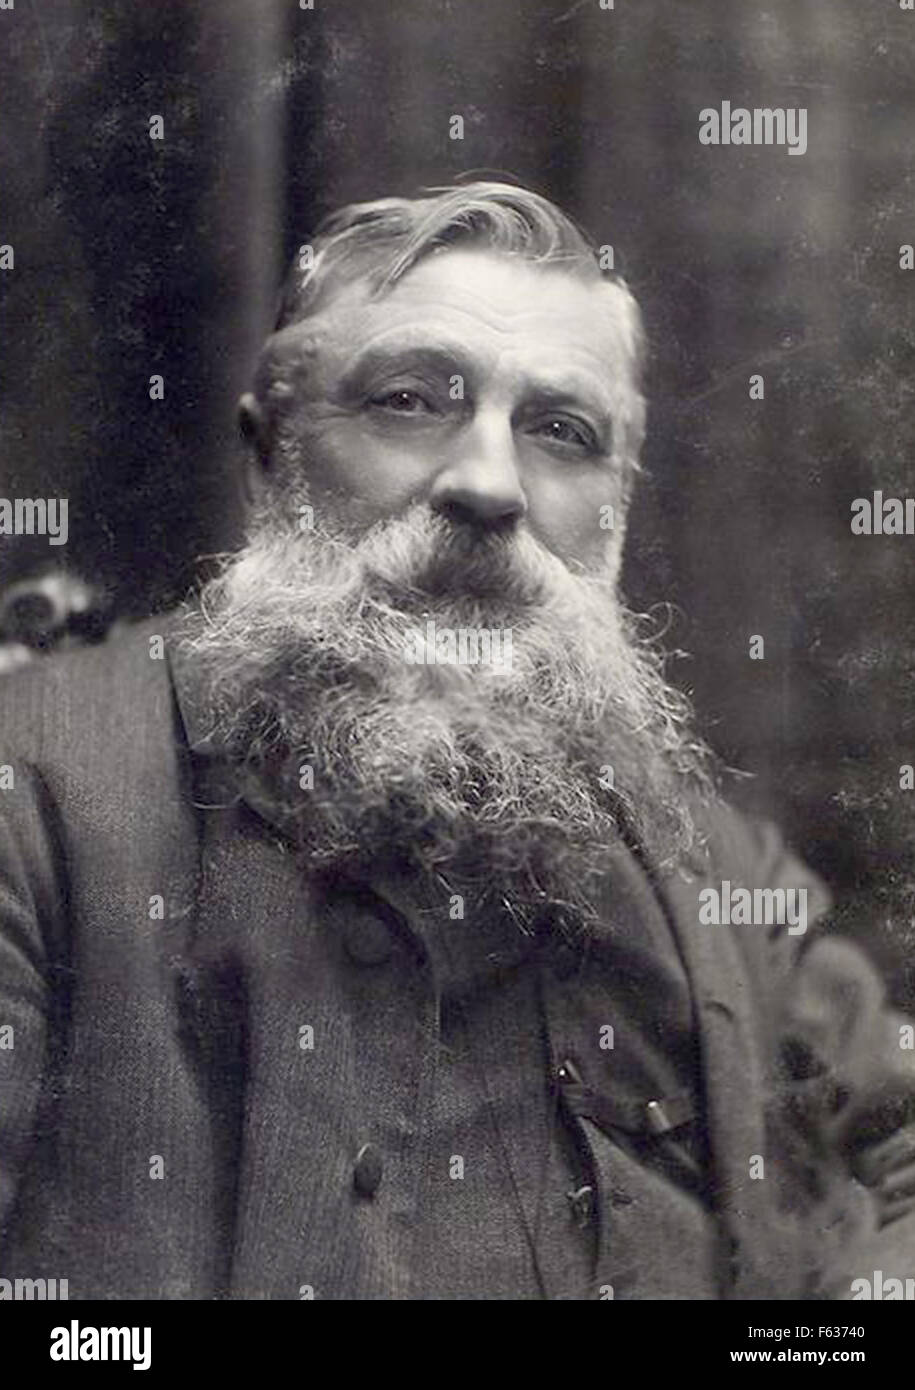 Auguste Rodin, French sculptor - Stock Image